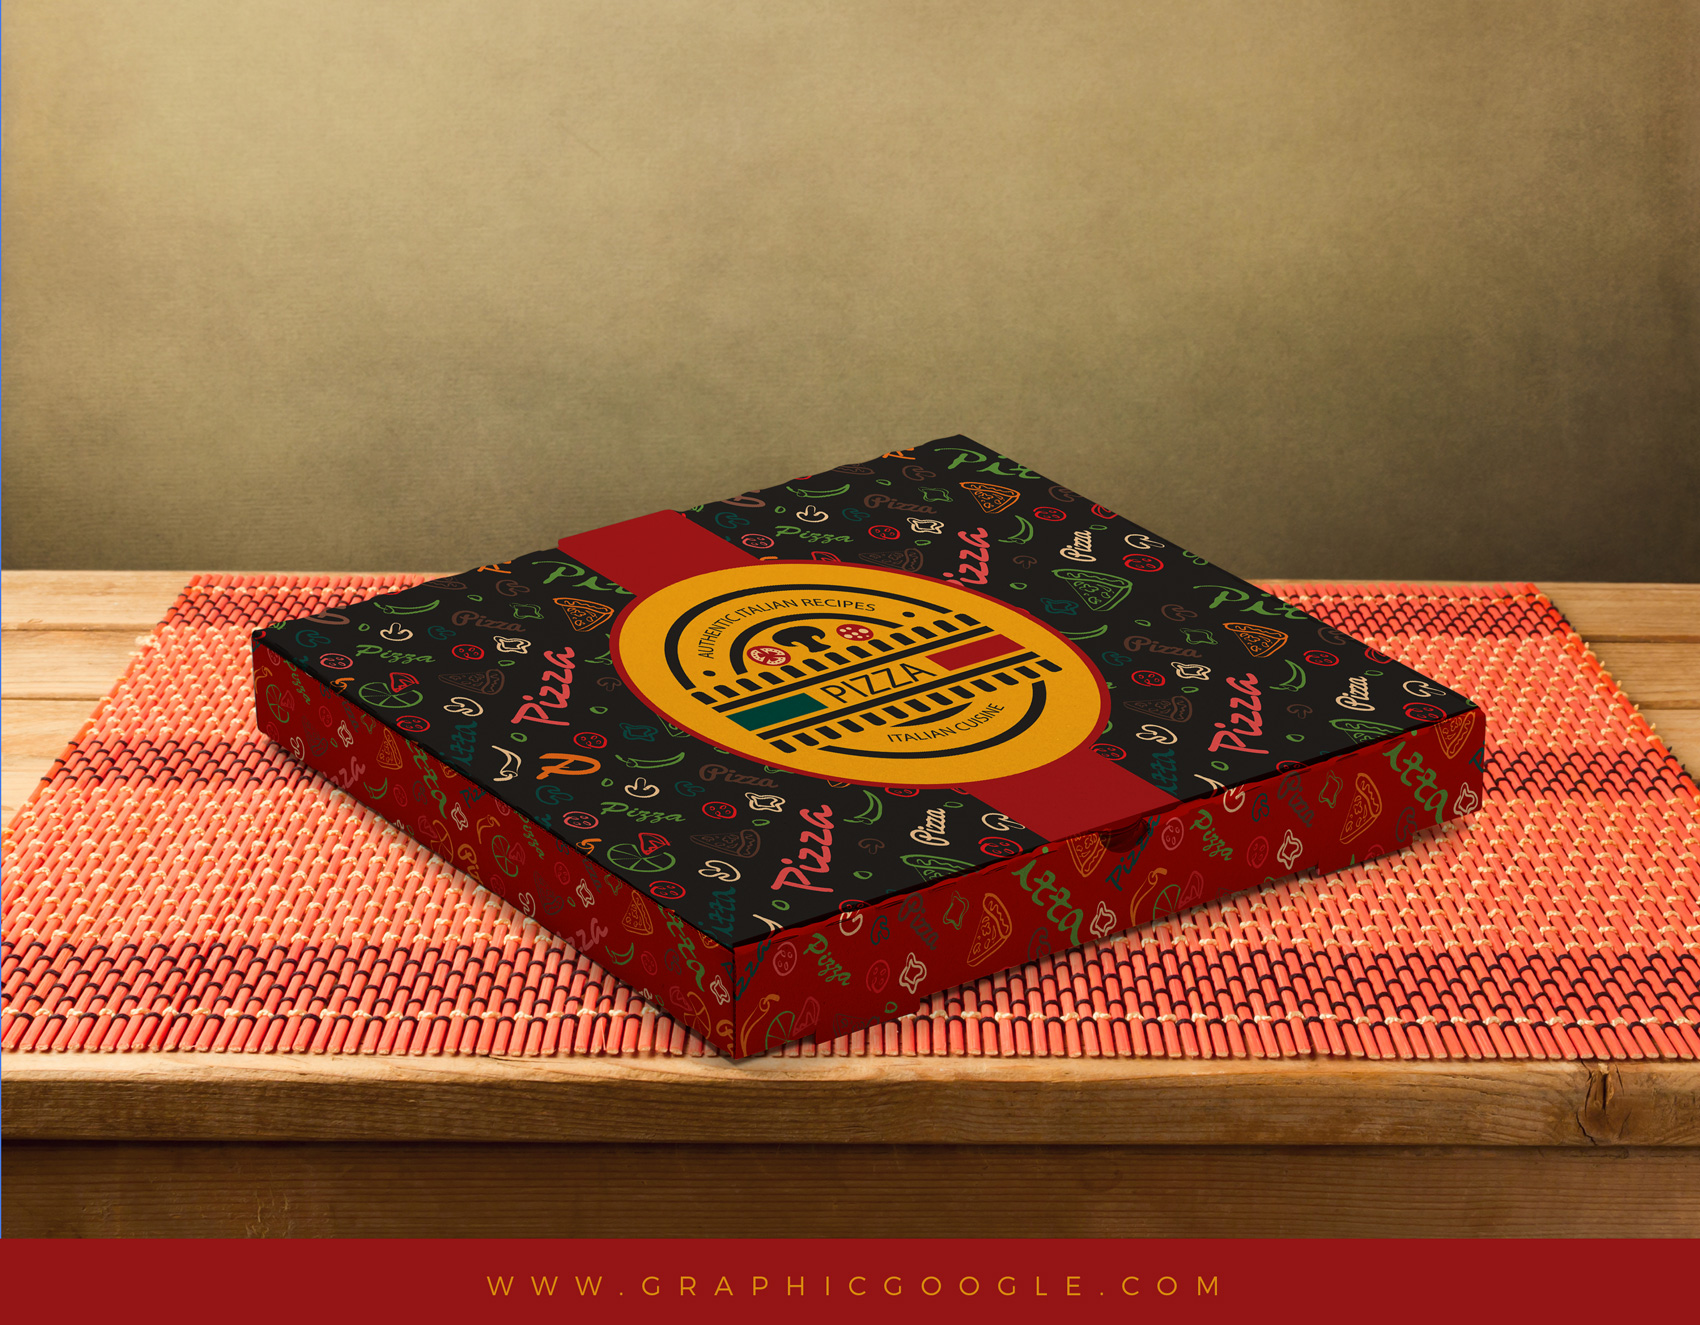 Free-Pizza-Box-Packaging-Mock-up-Psd-File